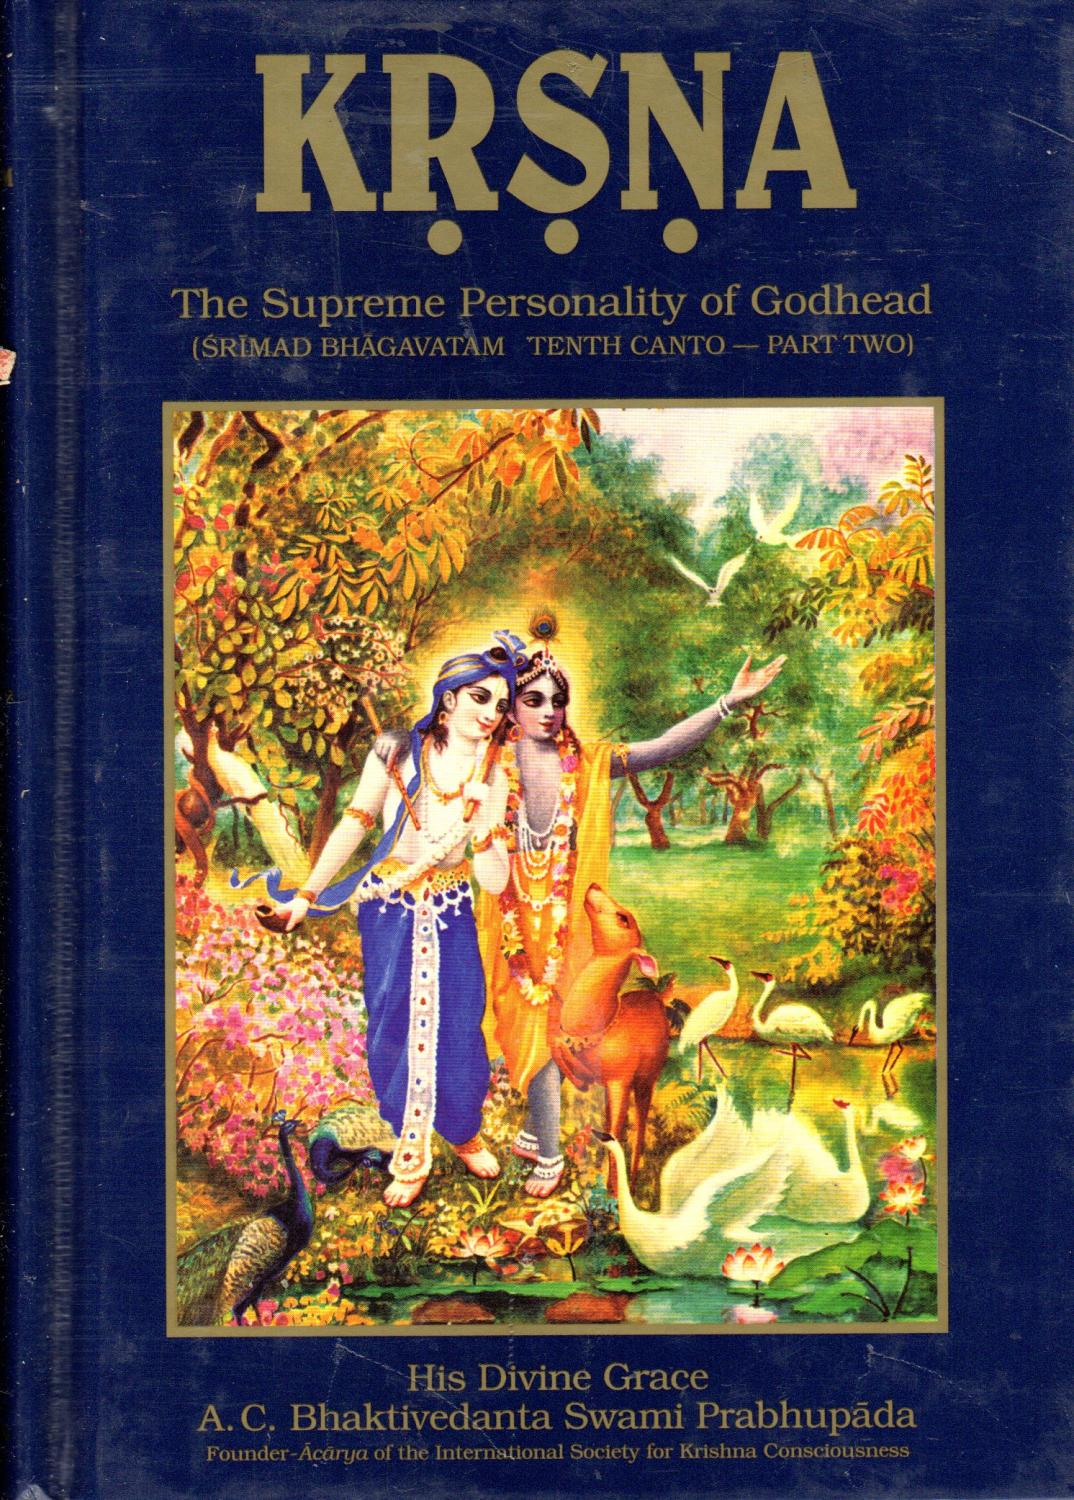 Srimad Bhagavatam: Tenth Canto Part 2 (Two): Krisna: The